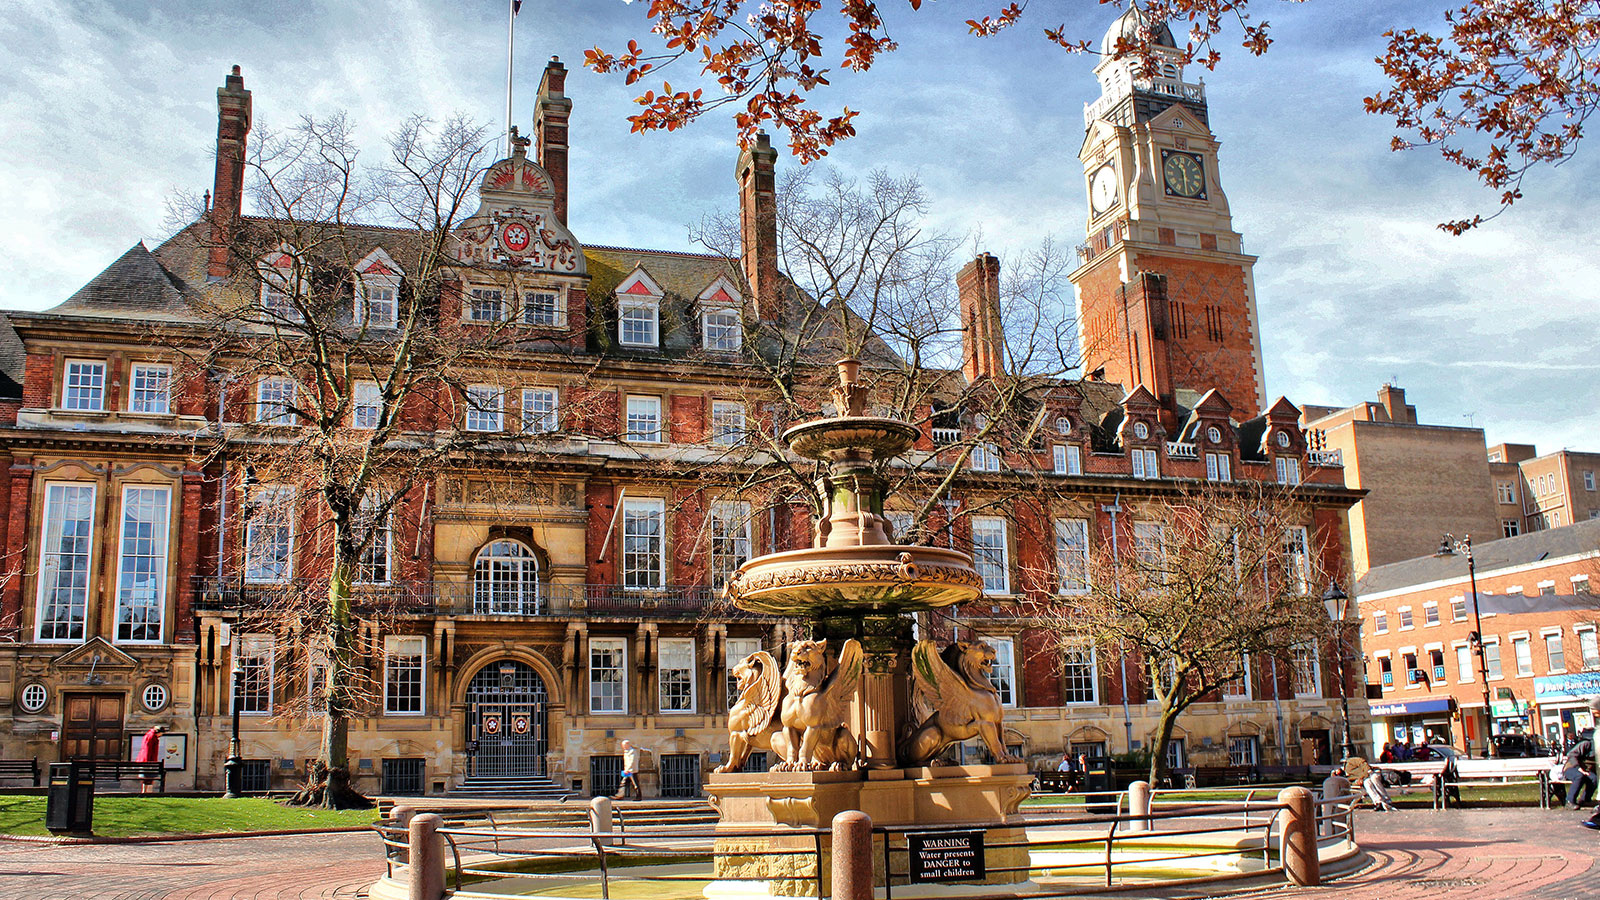 Leicester City Council chooses CDS for major project at magnificent town hall